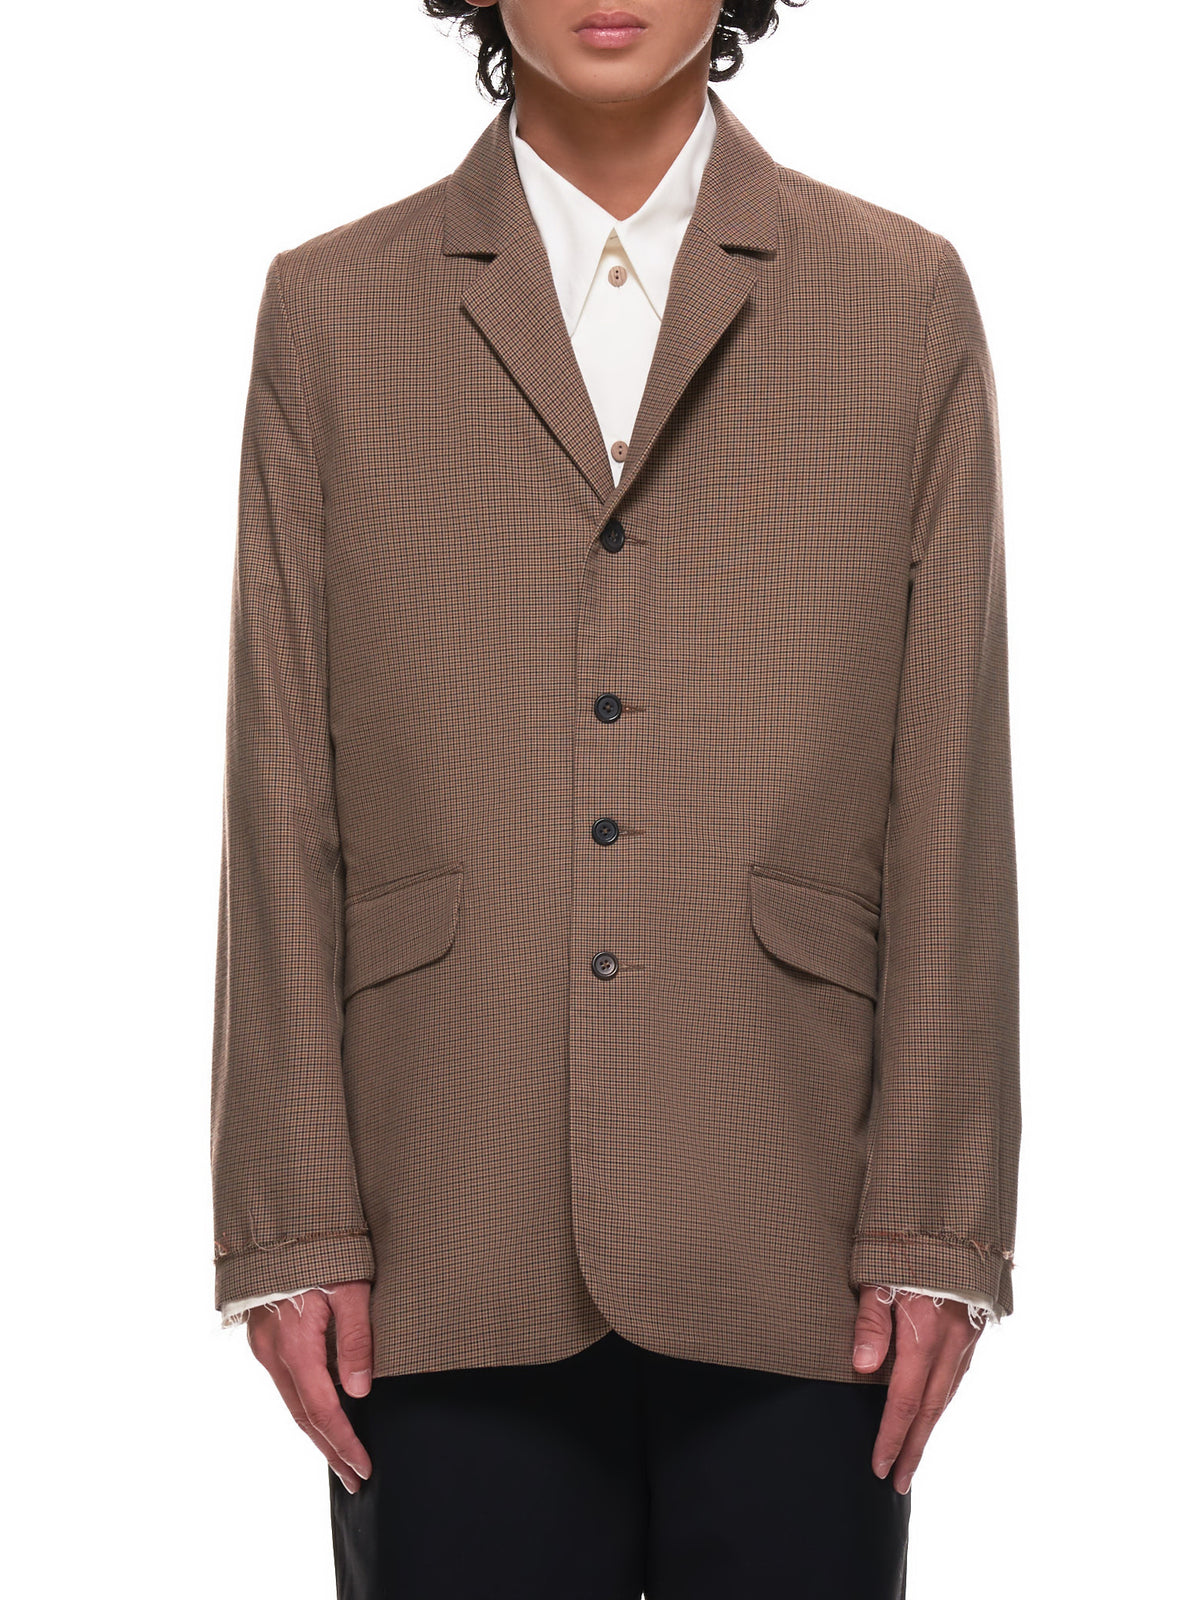 Raw Wool Blazer (10-08-03-BROWN)